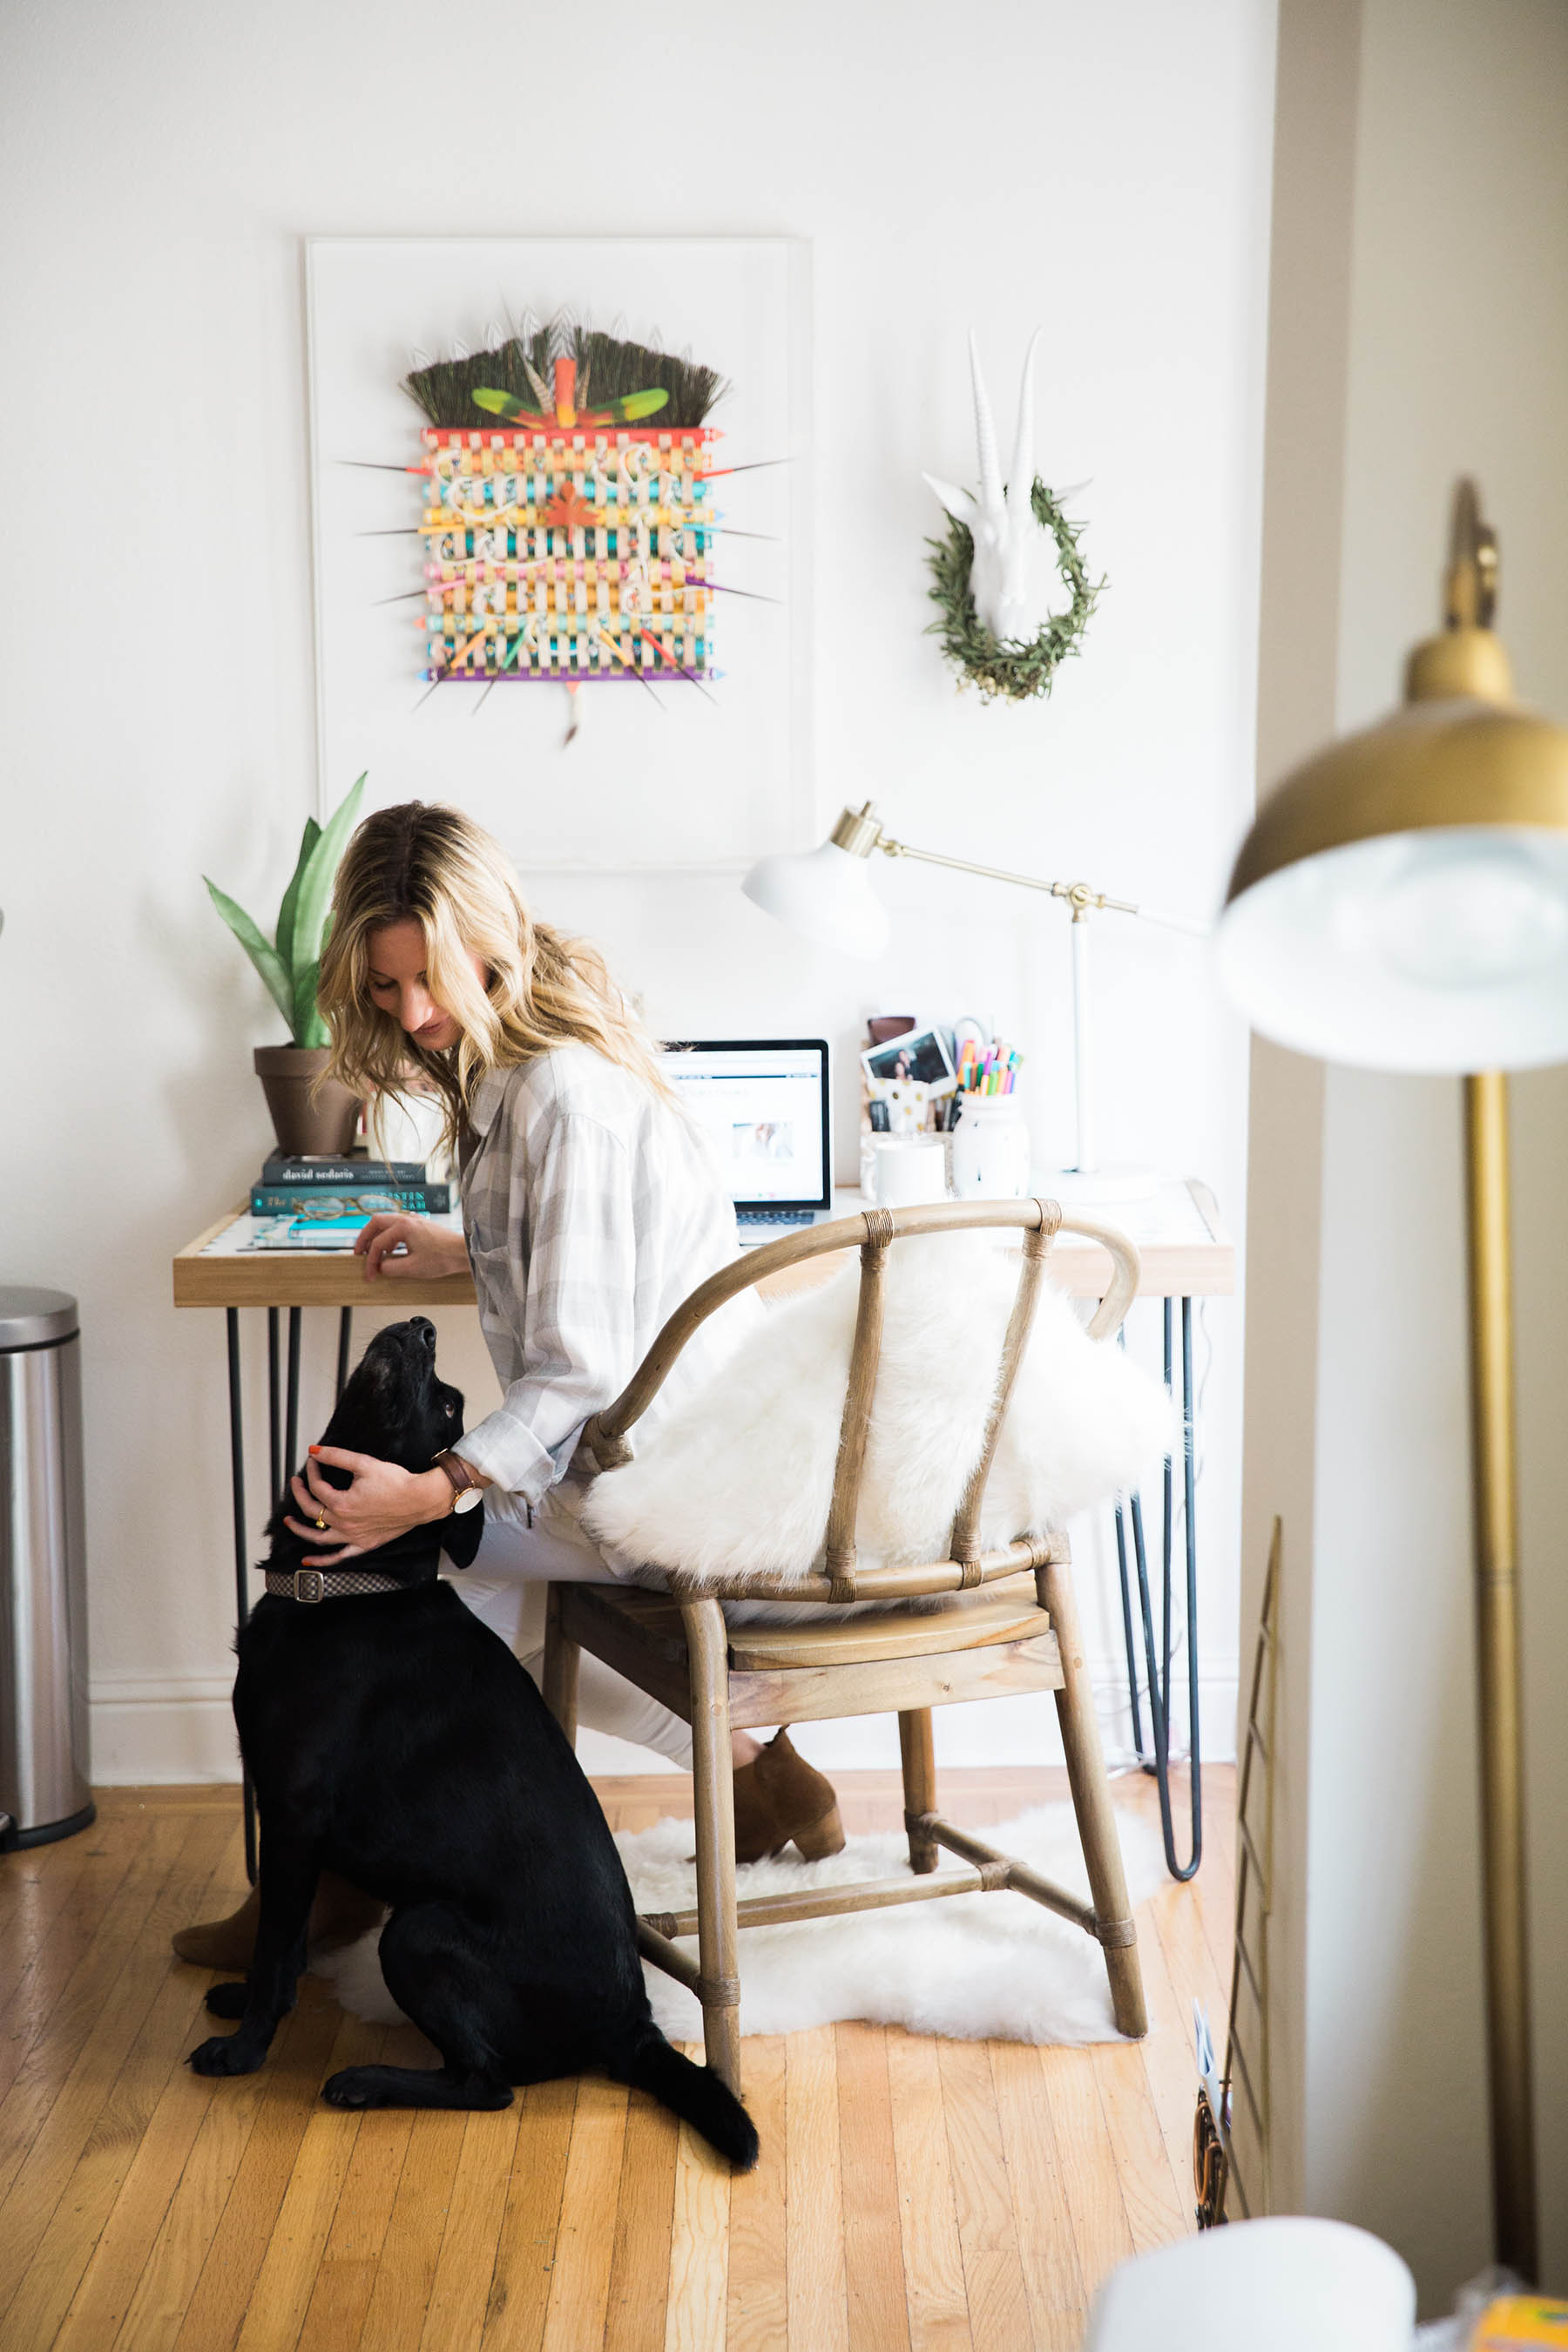 Clean Apartment Tips for Pet Owners